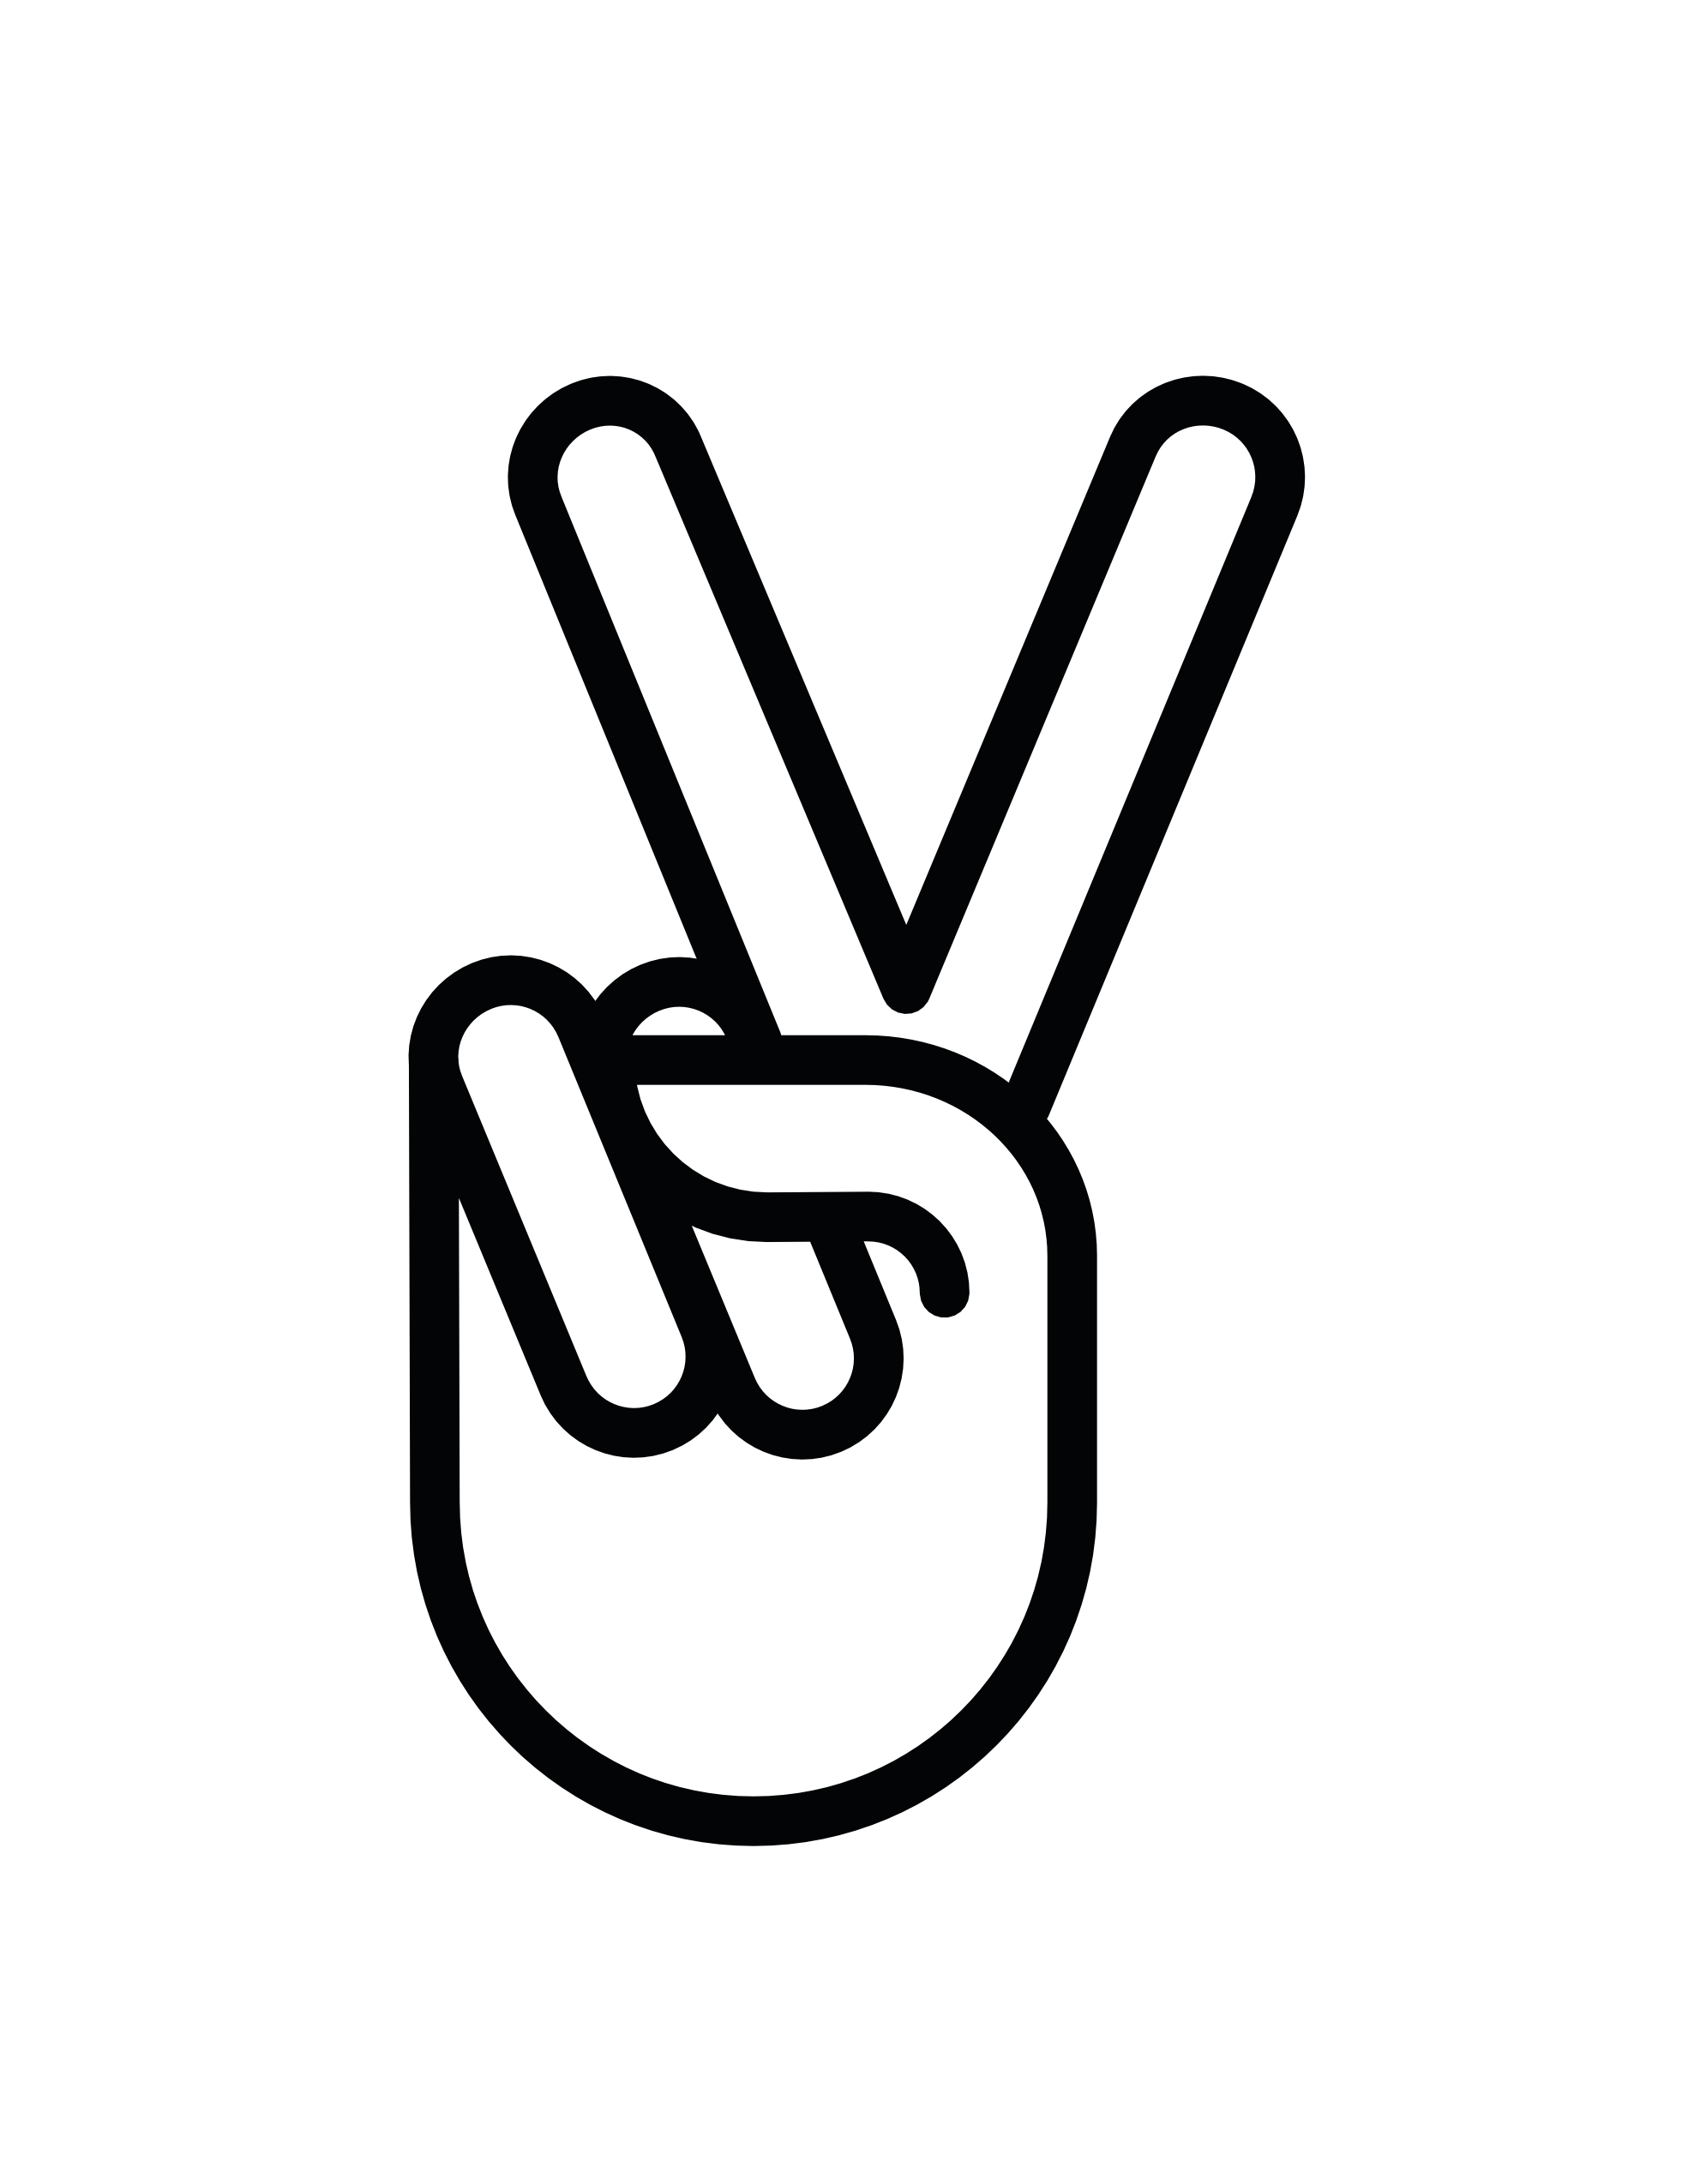 svg black and white Hand peace sign fav. Protest drawing peaceful